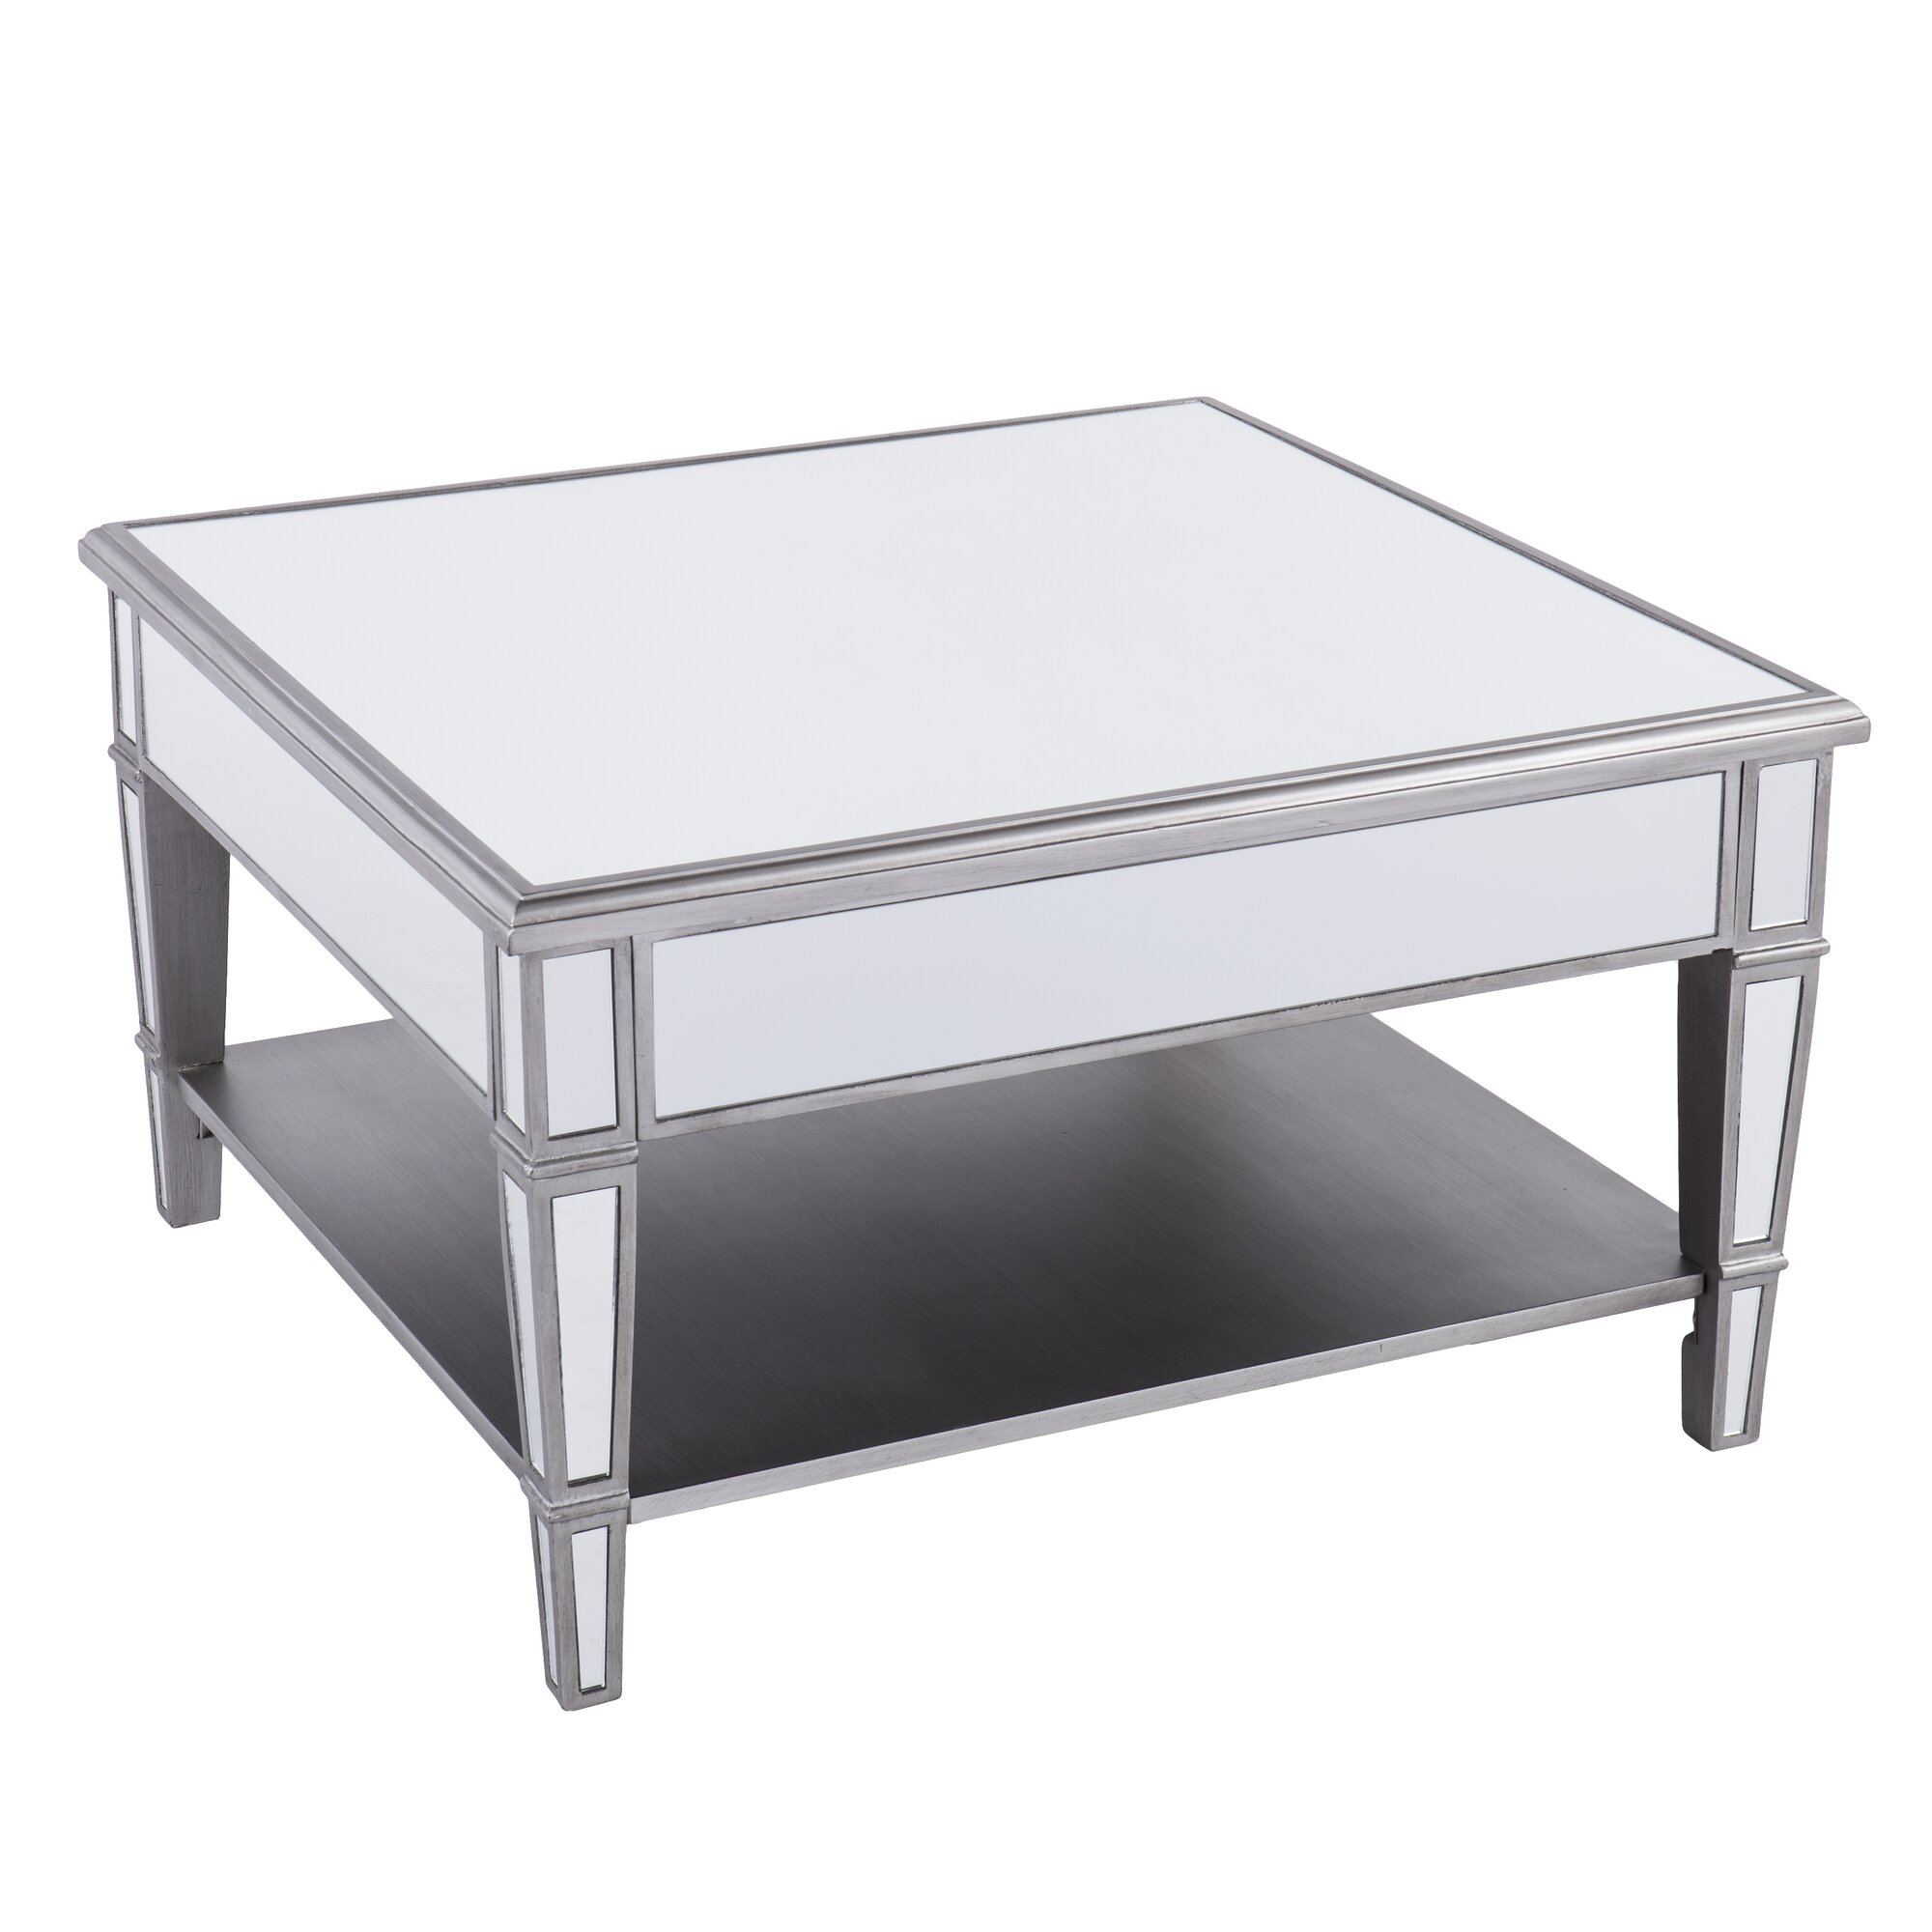 House of hampton caspian mirrored square coffee table for Wayfair mirrored coffee table